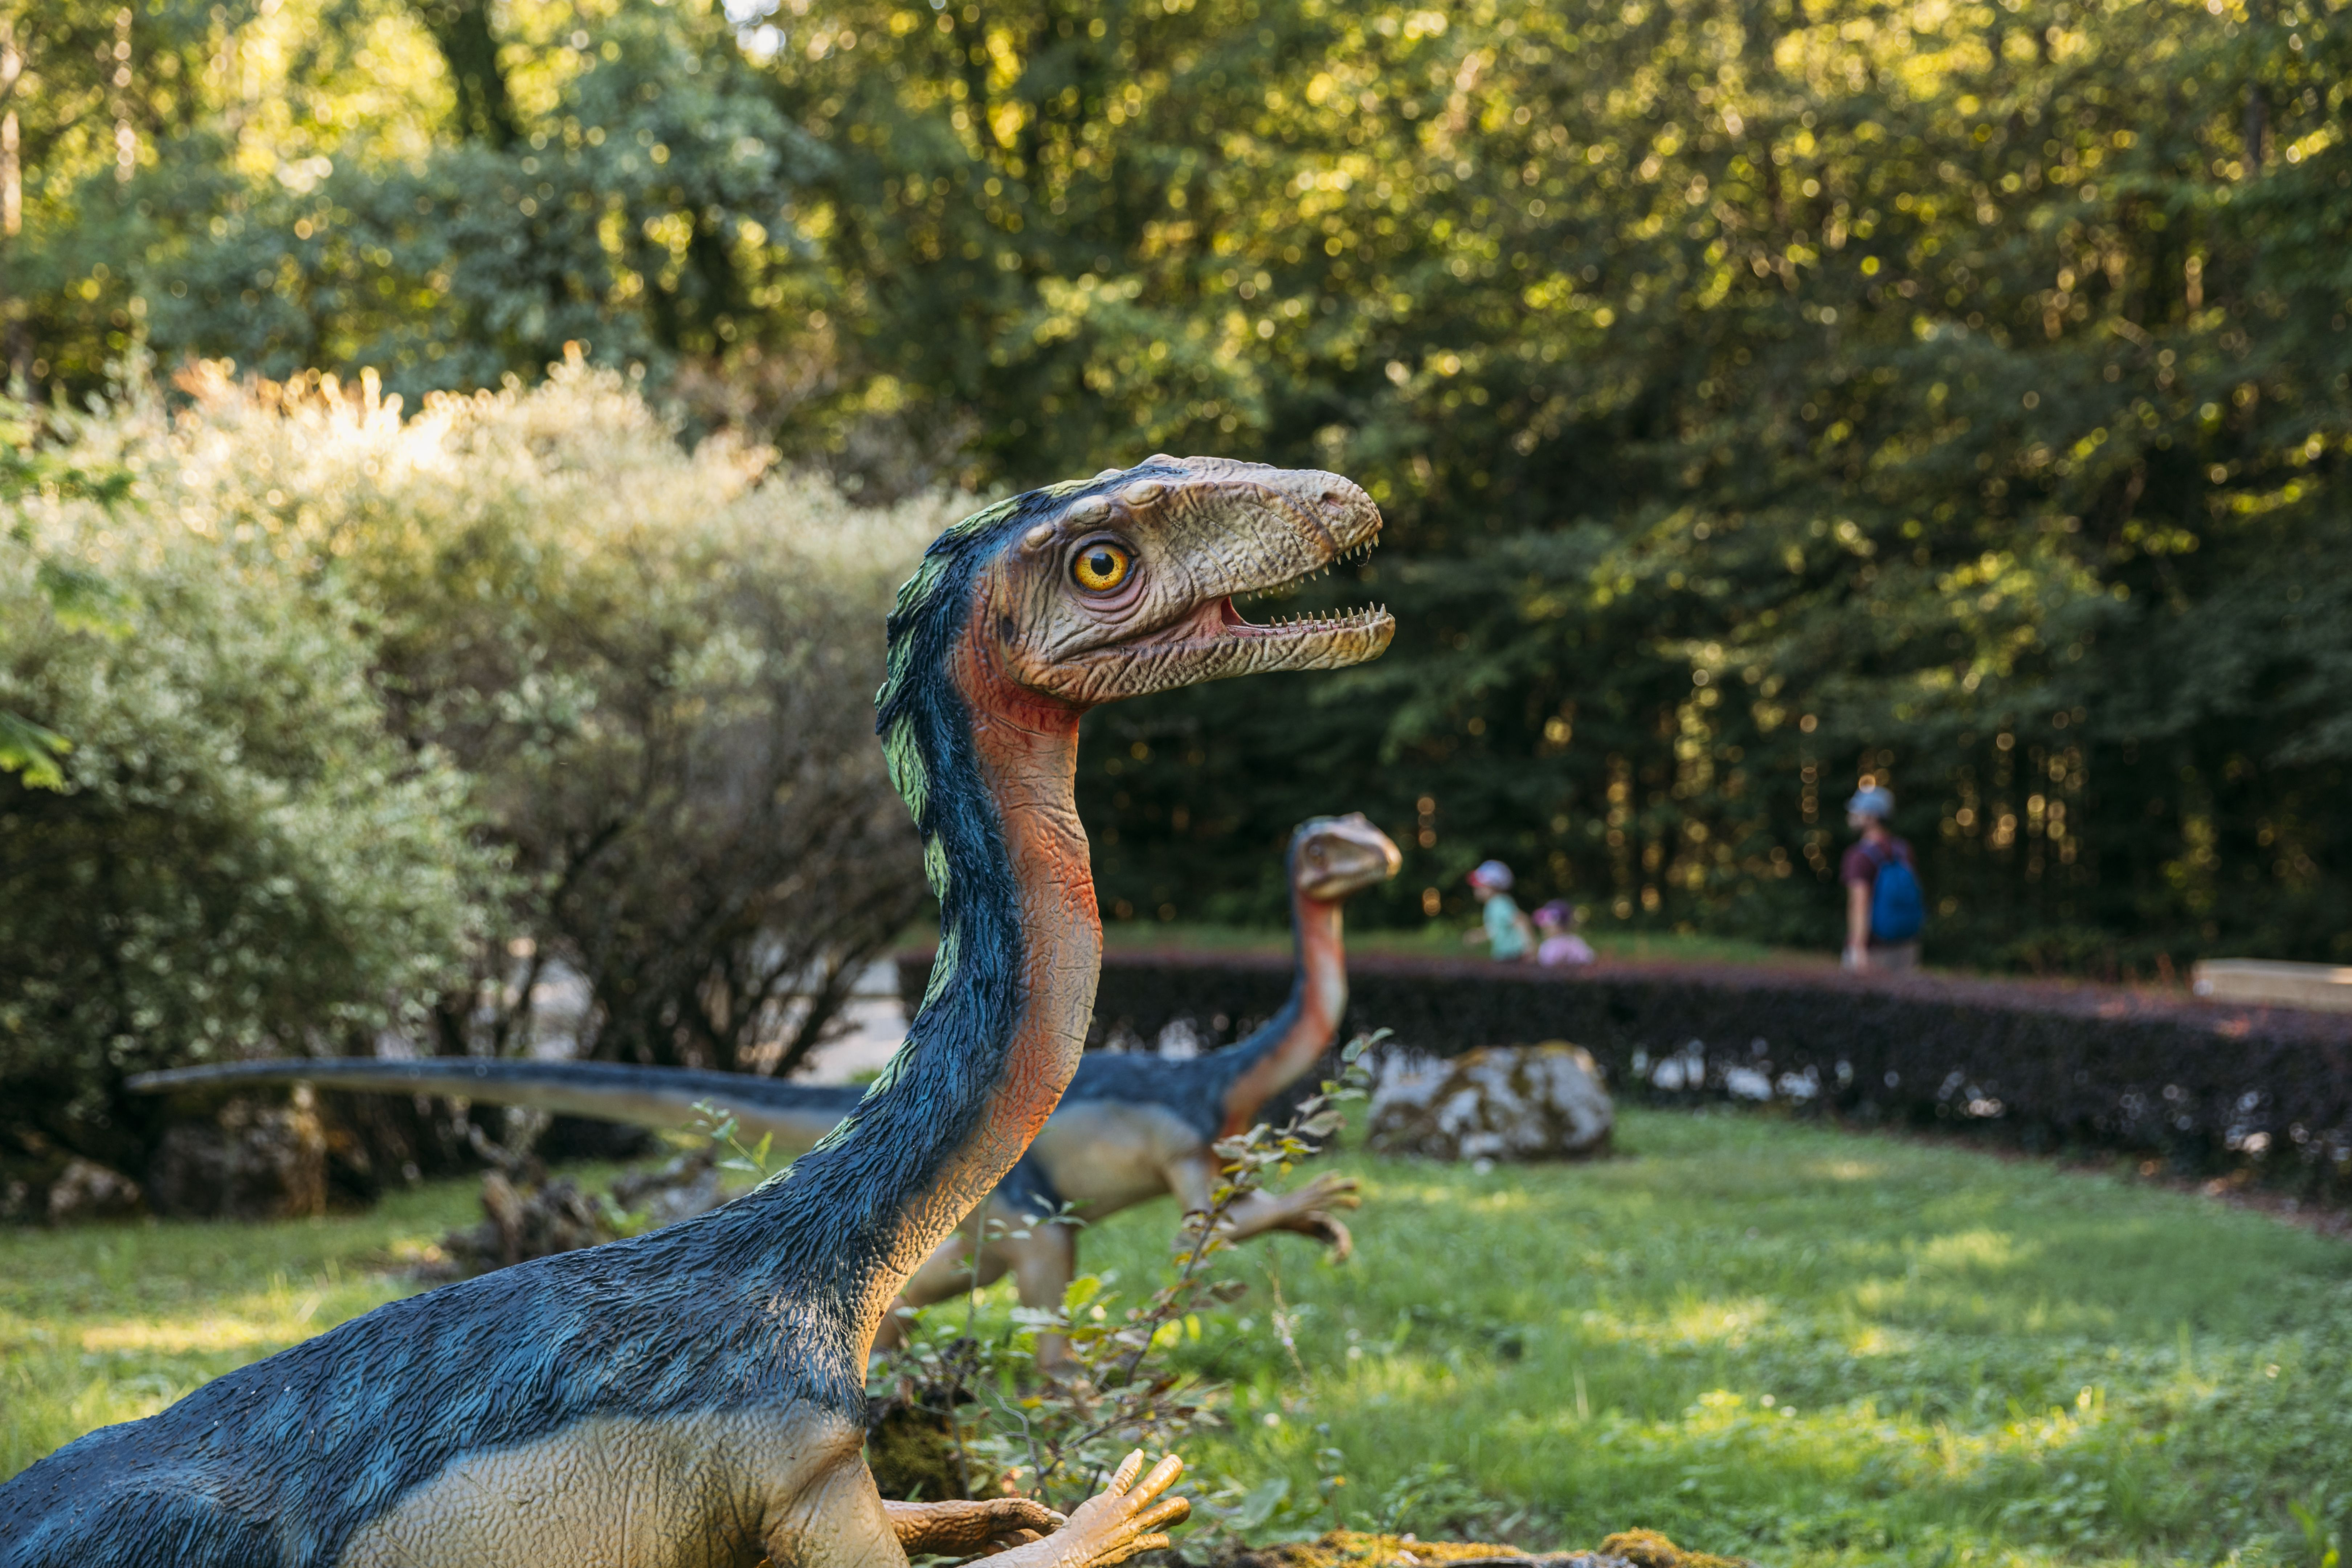 parcours dinosaure - parc dino-zoo